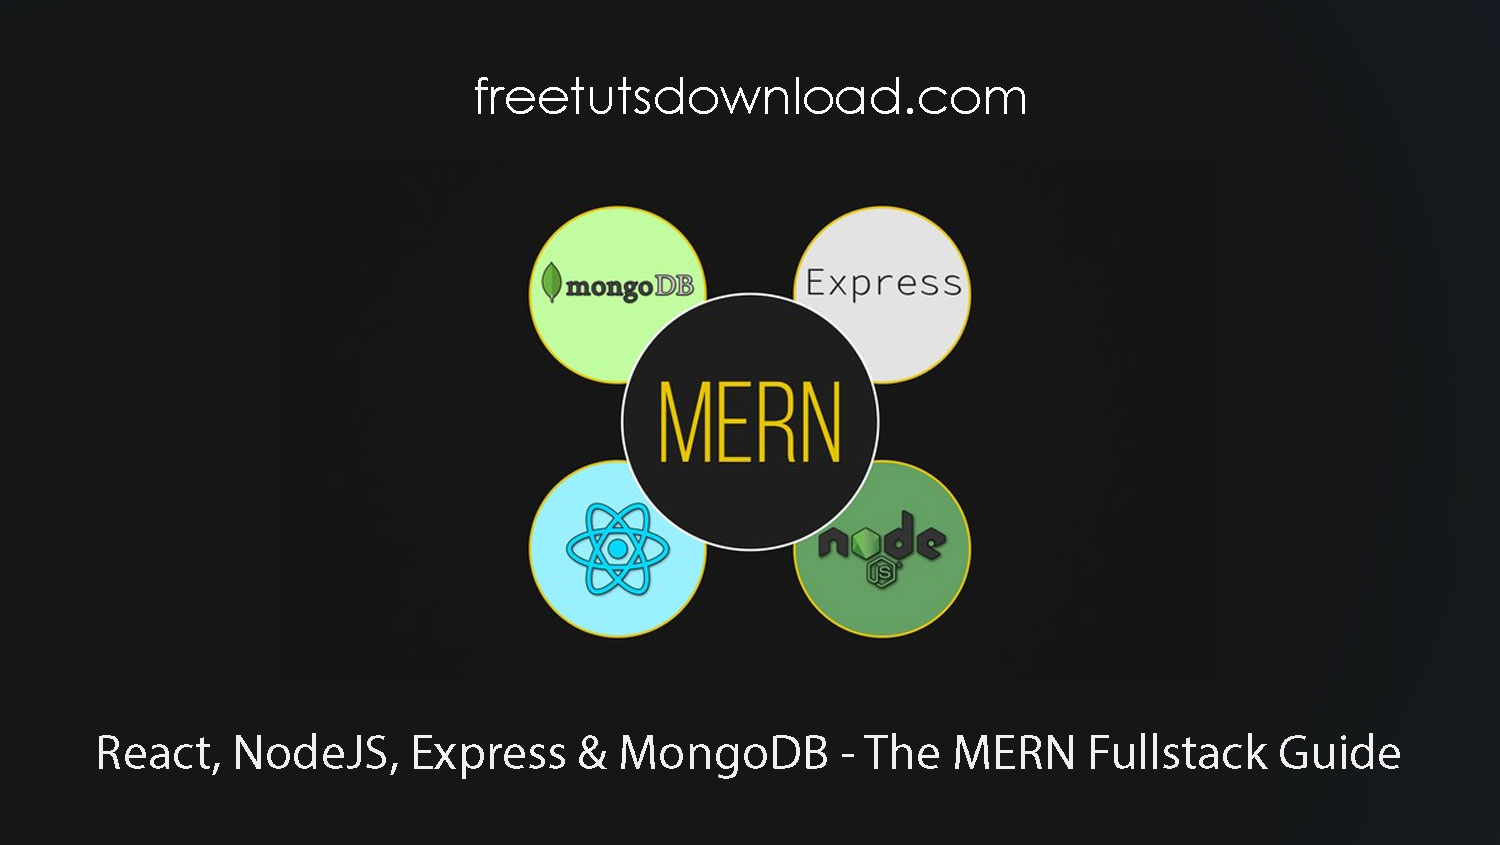 React, NodeJS, Express & MongoDB - The MERN Fullstack Guide